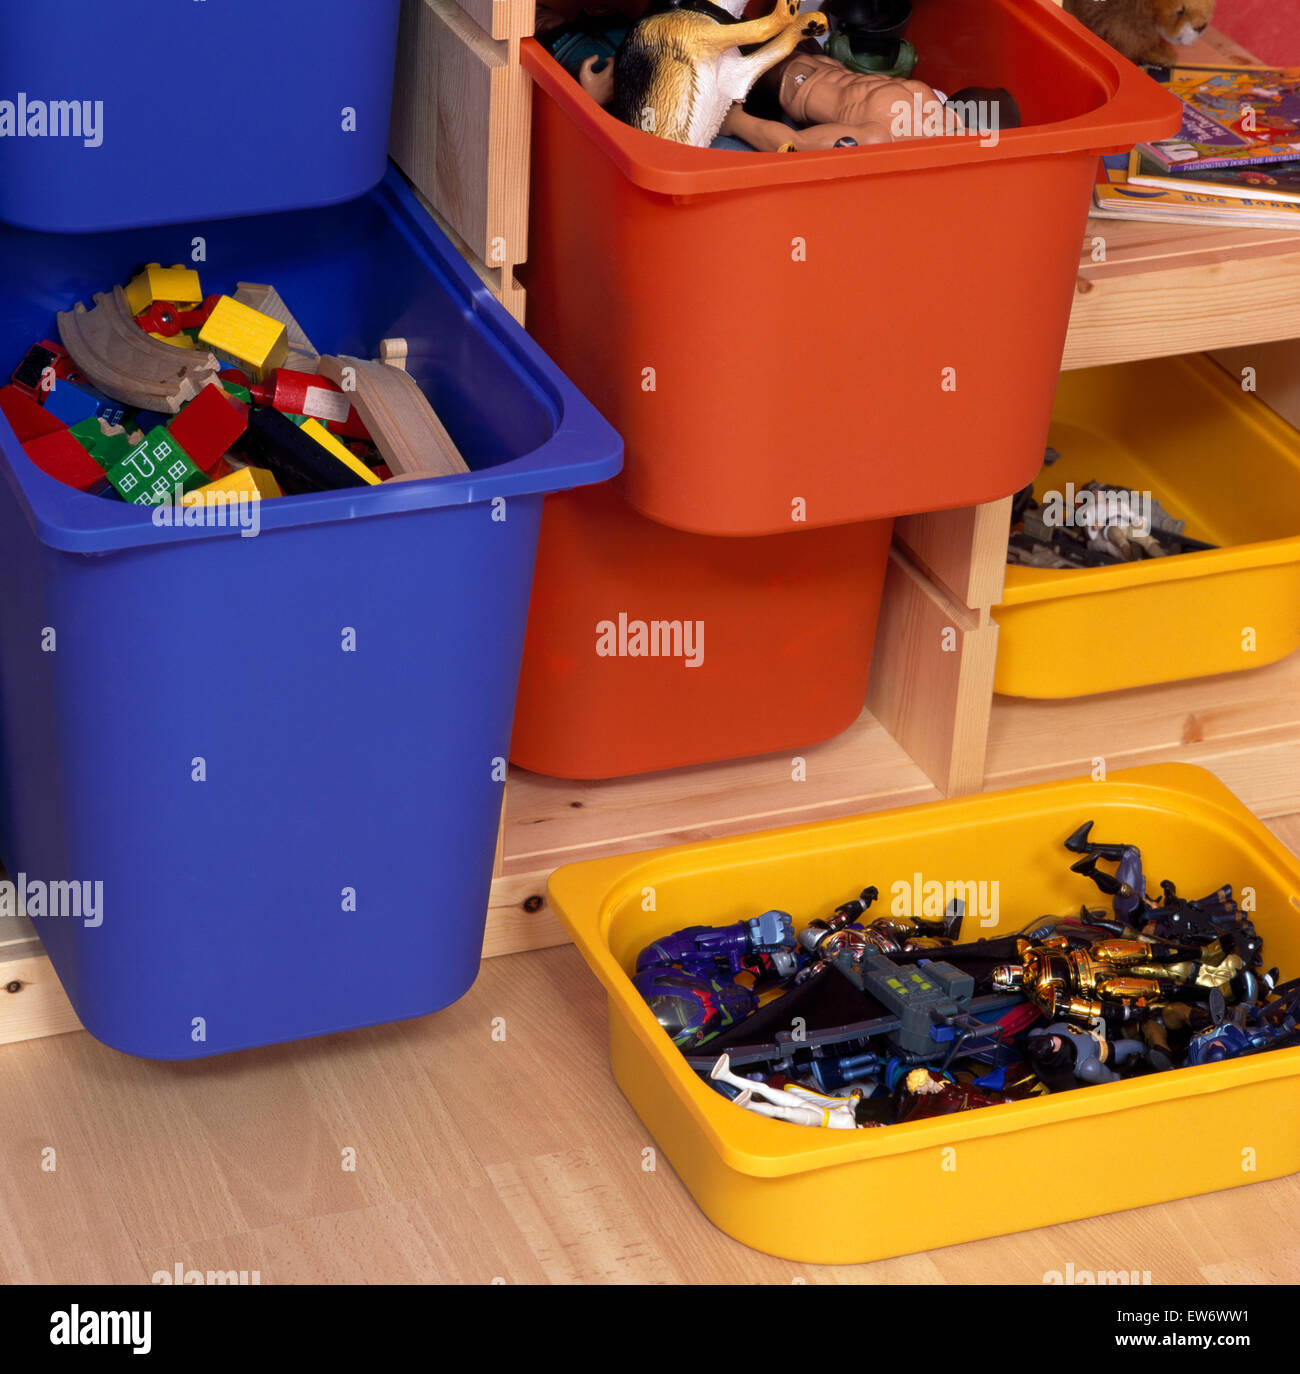 Close-up of brightly colored plastic bins storing children's toys - Stock Image